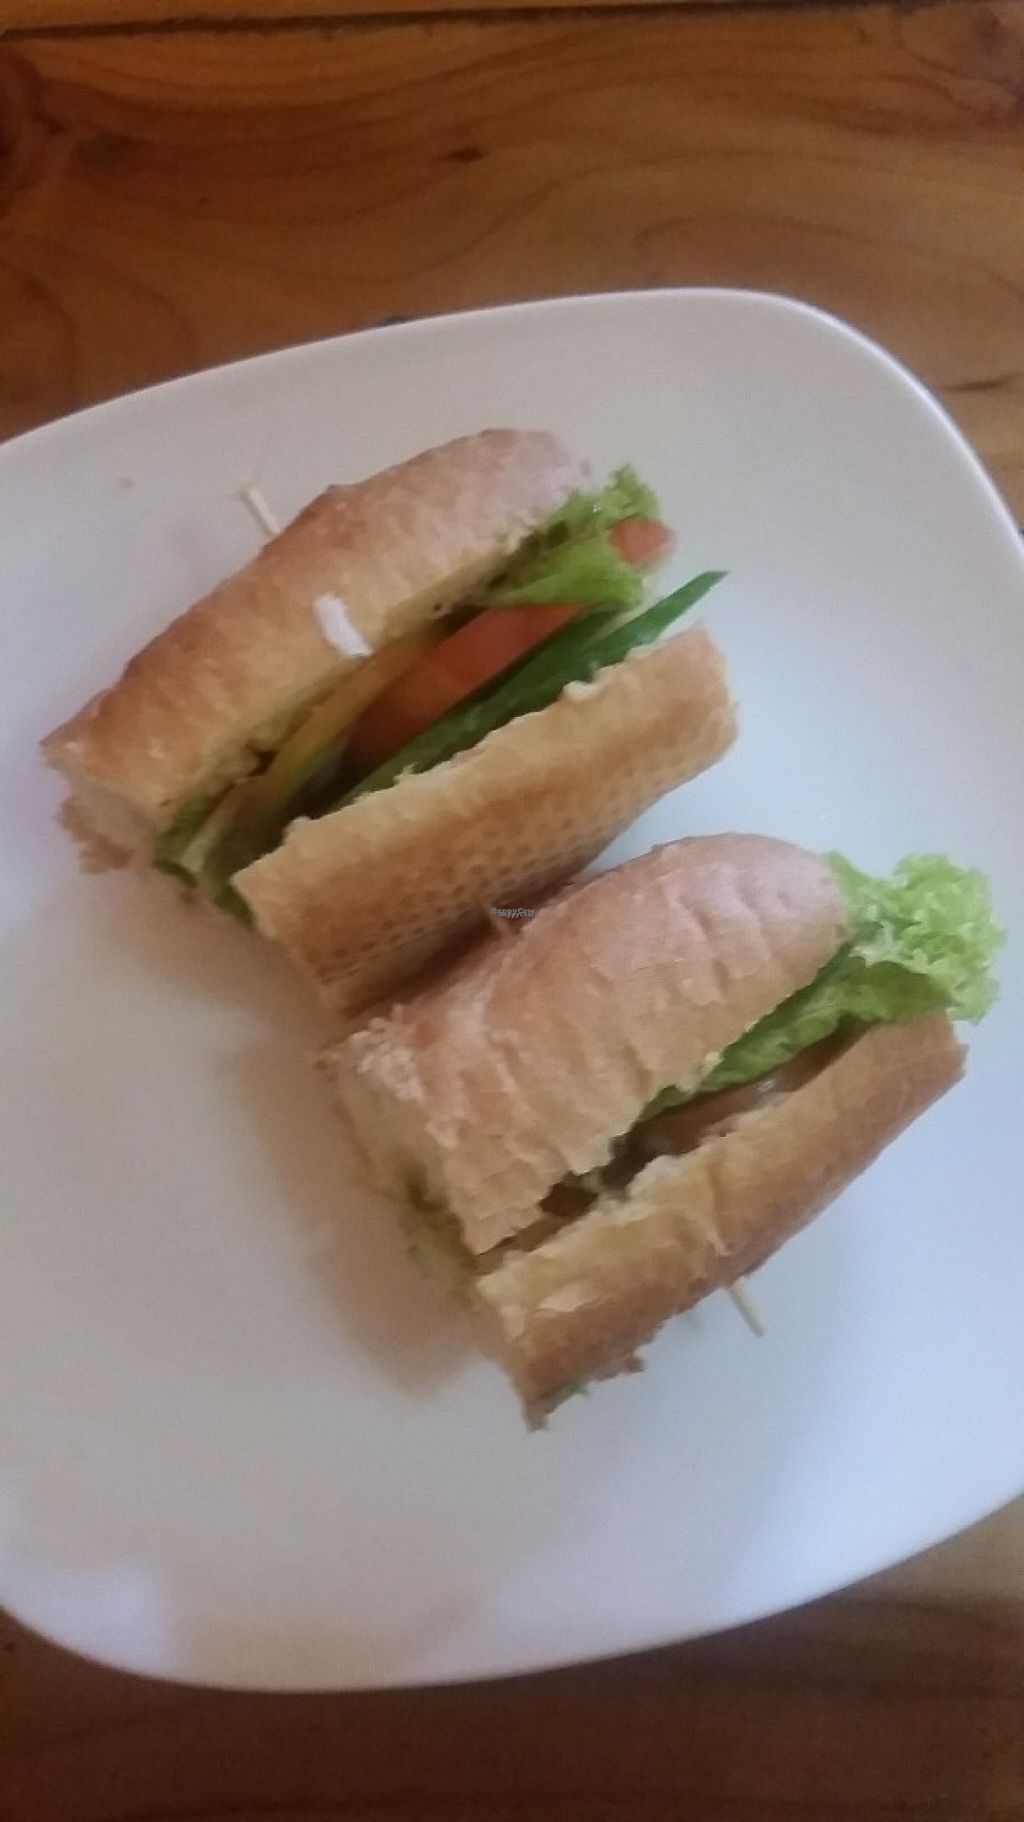 """Photo of Cafe Soleil  by <a href=""""/members/profile/Without_Cruelty_Blog"""">Without_Cruelty_Blog</a> <br/>Hummus and salad bagette <br/> November 7, 2016  - <a href='/contact/abuse/image/33811/187137'>Report</a>"""